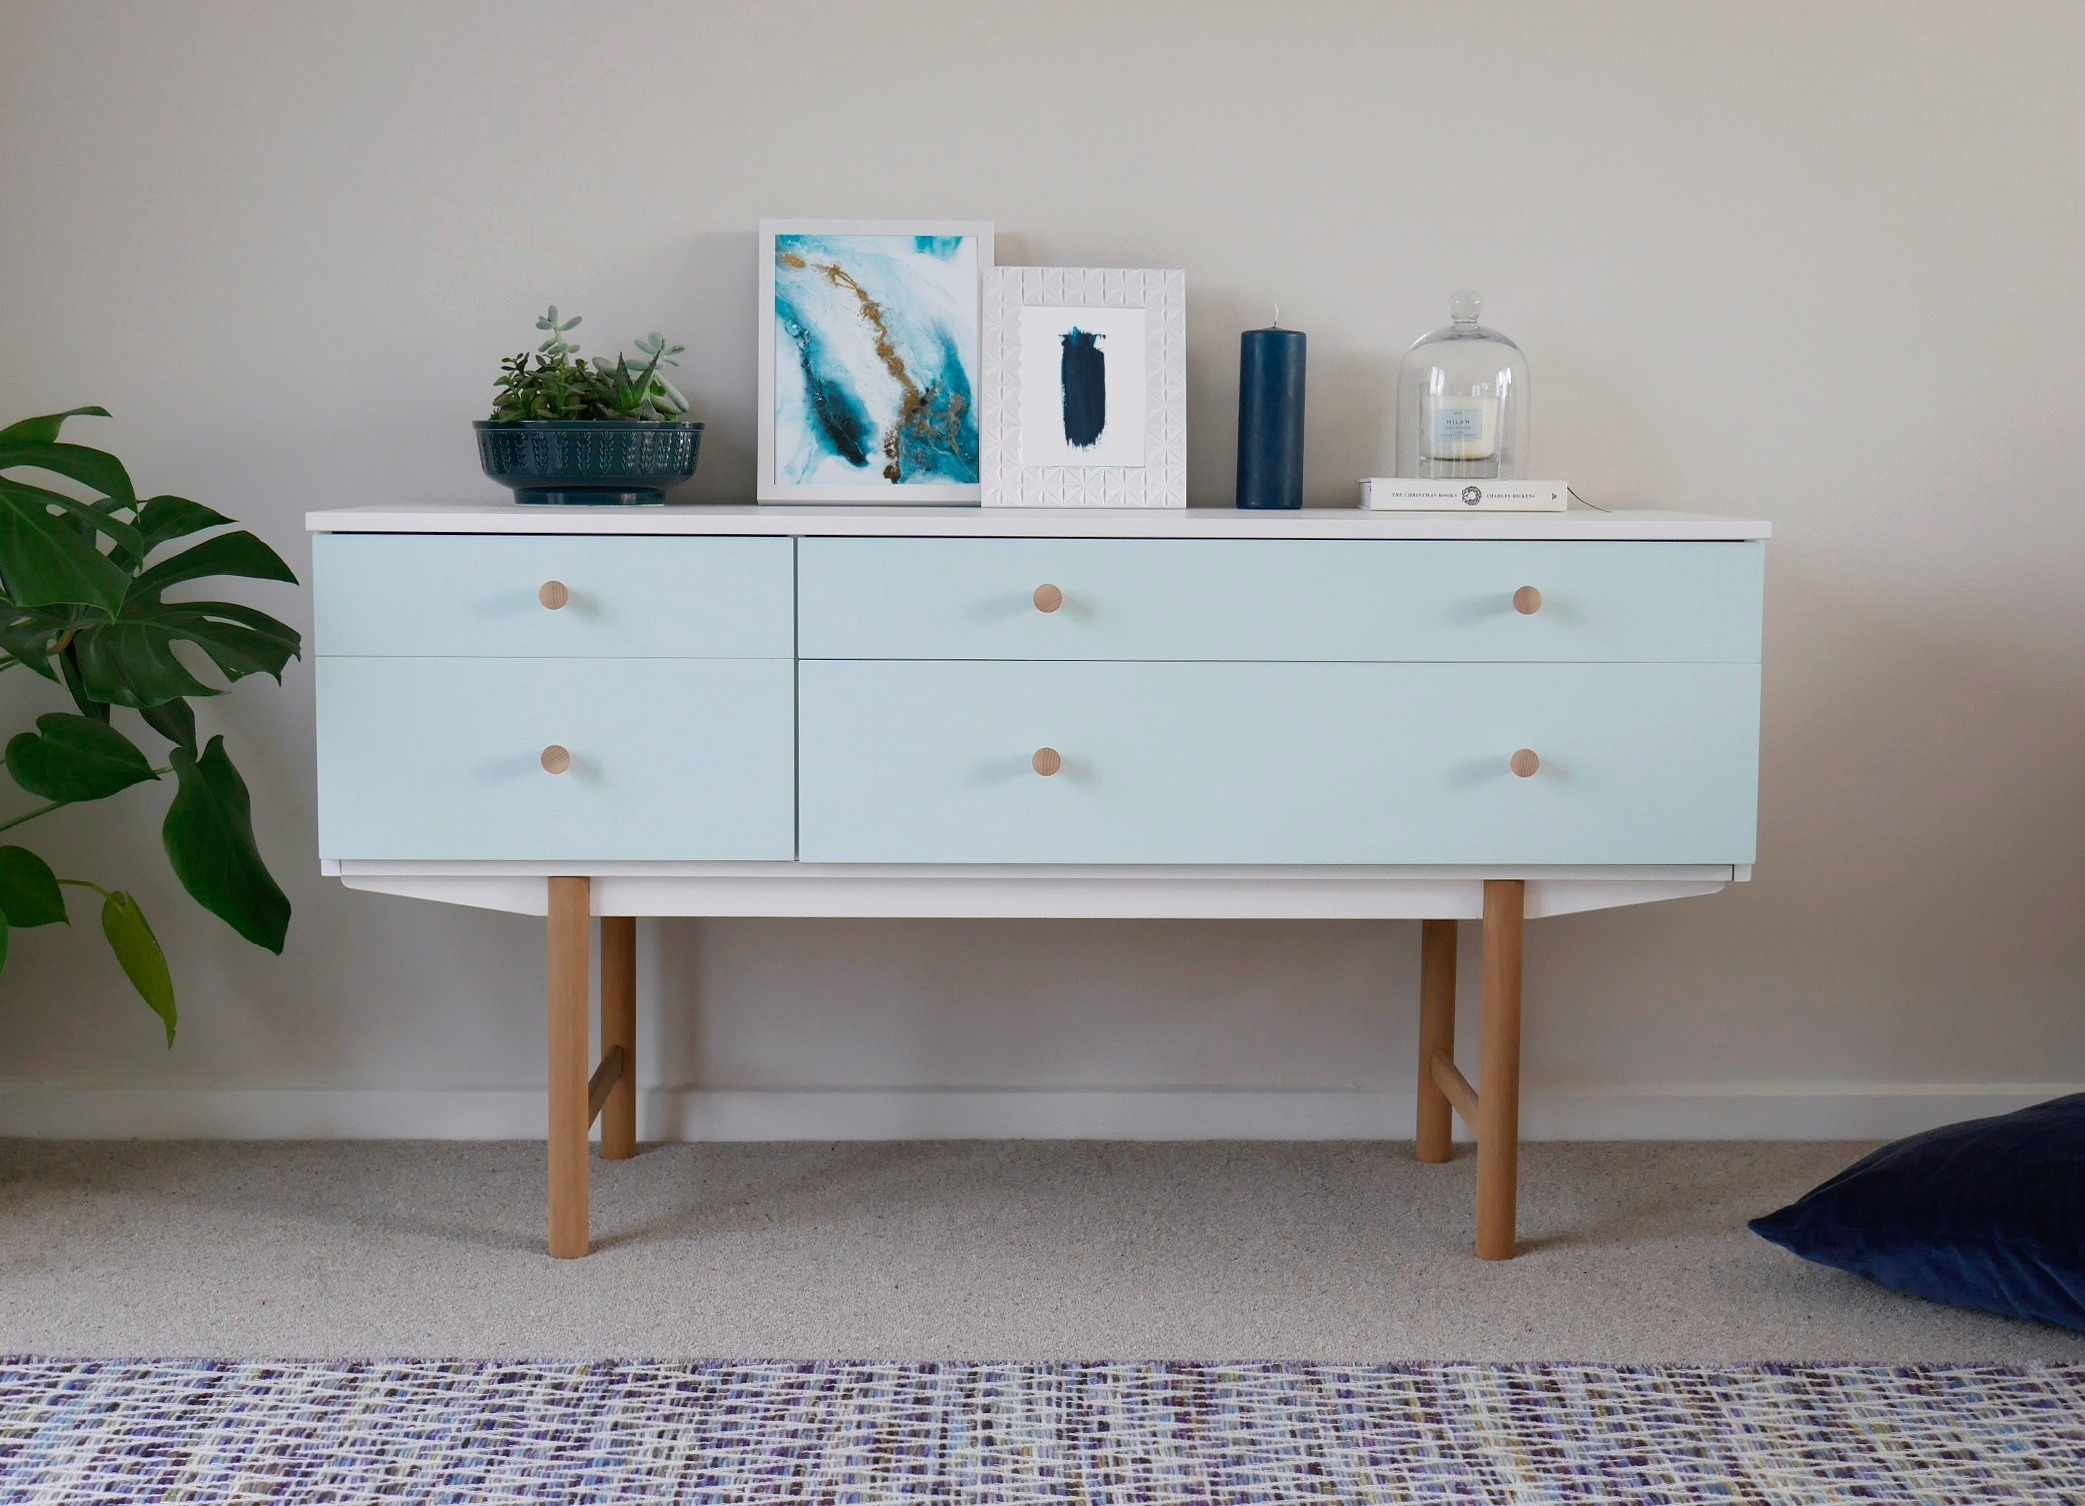 Mid Century Modern Sideboard Drawers Painted White & Duck Egg Blue Regarding Mid Century Modern Egg Tables (View 17 of 30)